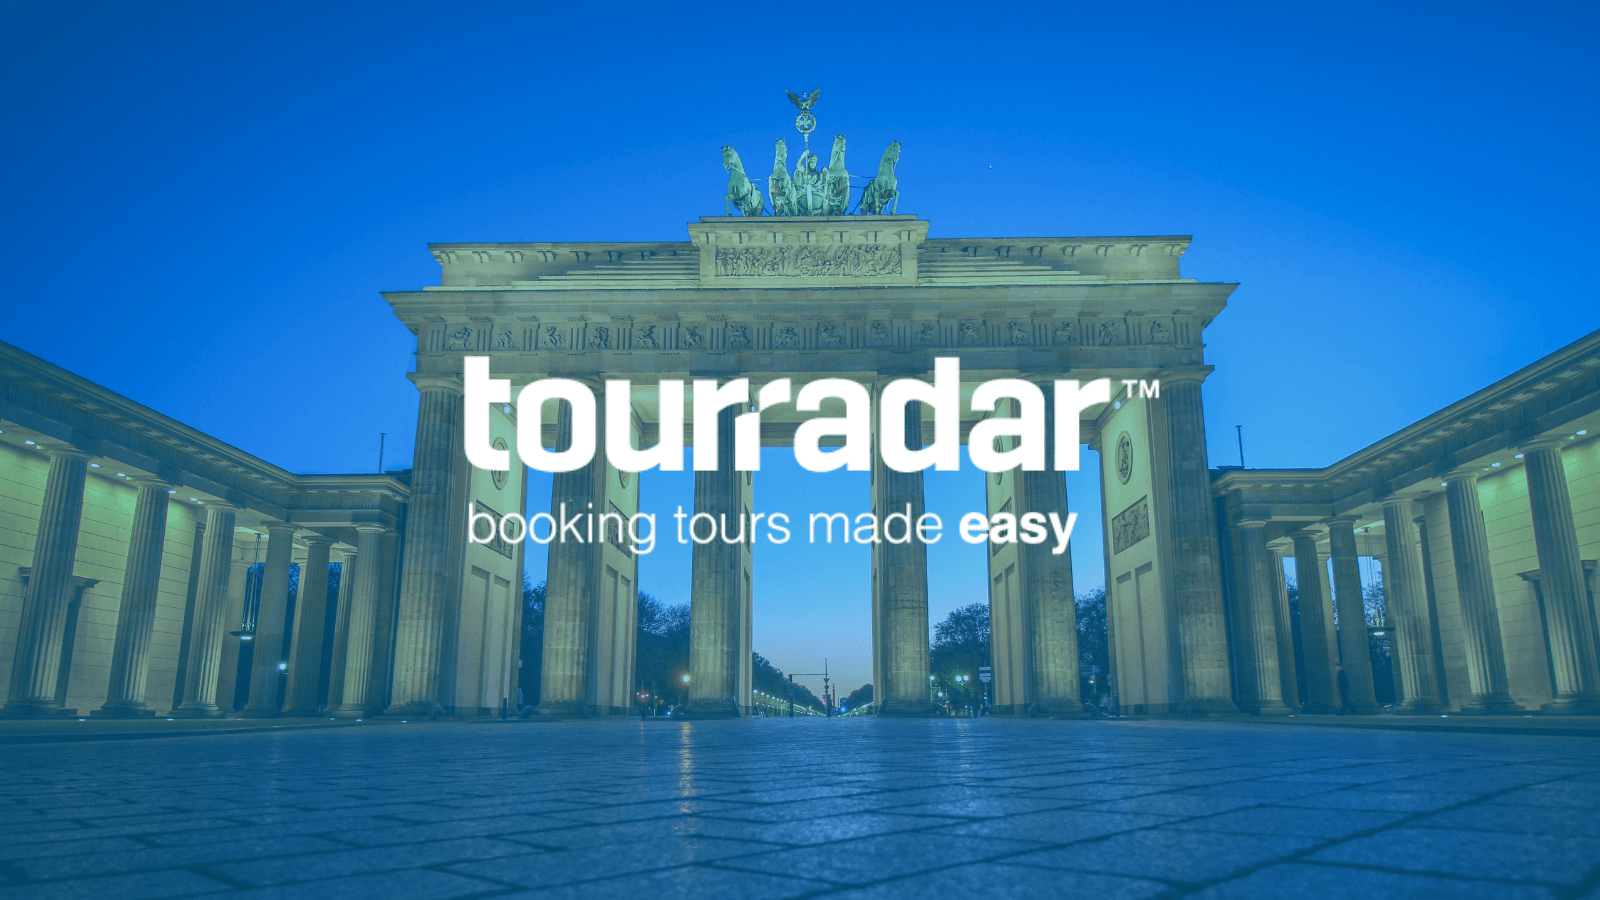 Online Marketplace TourRadar Launches German Language Capability